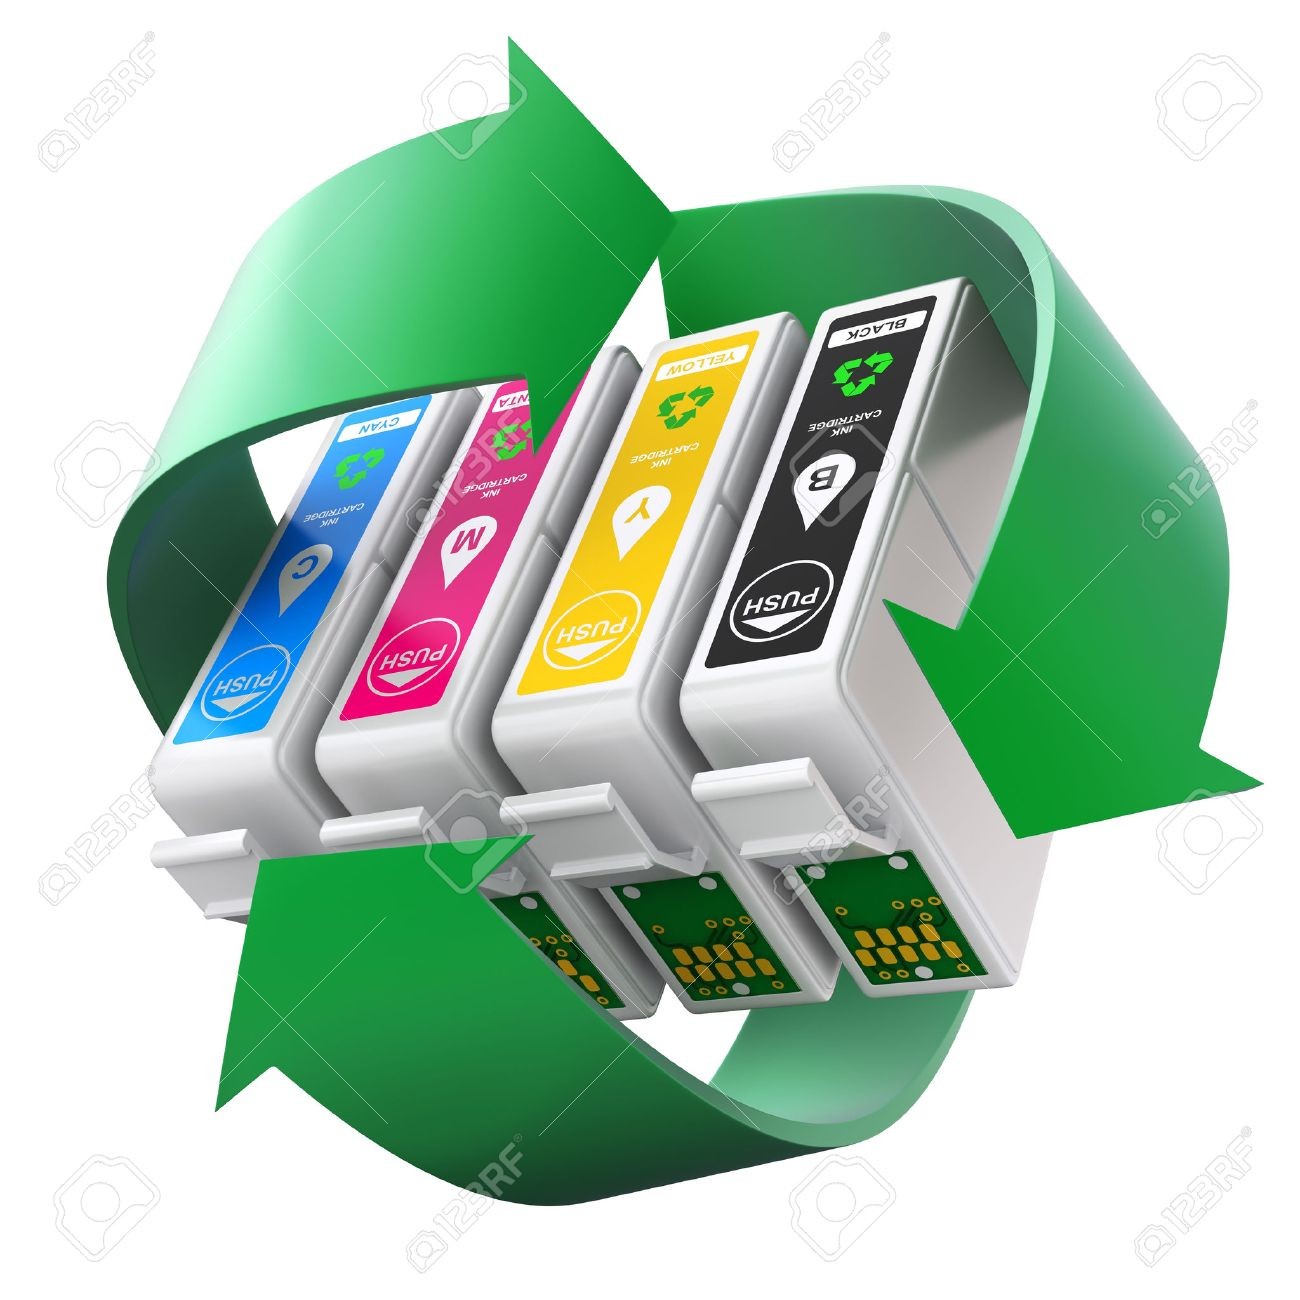 Cmyk set of cartridges with recycling symbol stock photo picture cmyk set of cartridges with recycling symbol stock photo 54103769 biocorpaavc Gallery